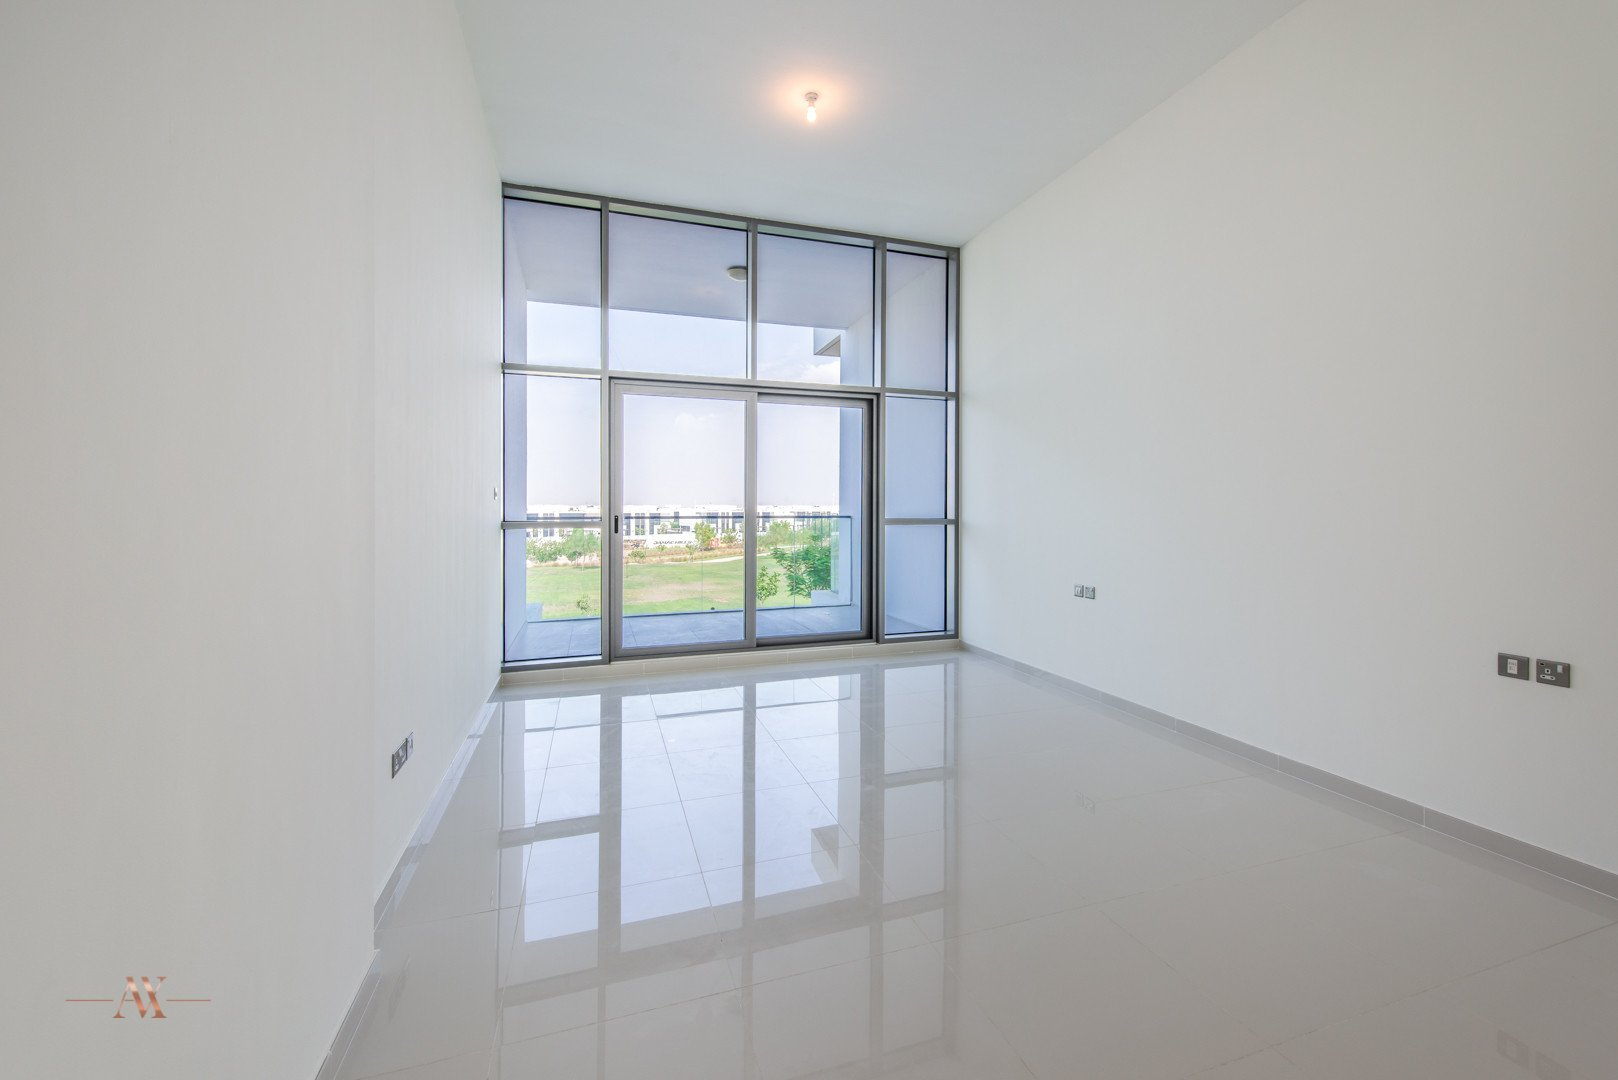 Townhouse for sale in Dubai, UAE, 3 bedrooms, 362.9 m2, No. 23666 – photo 5